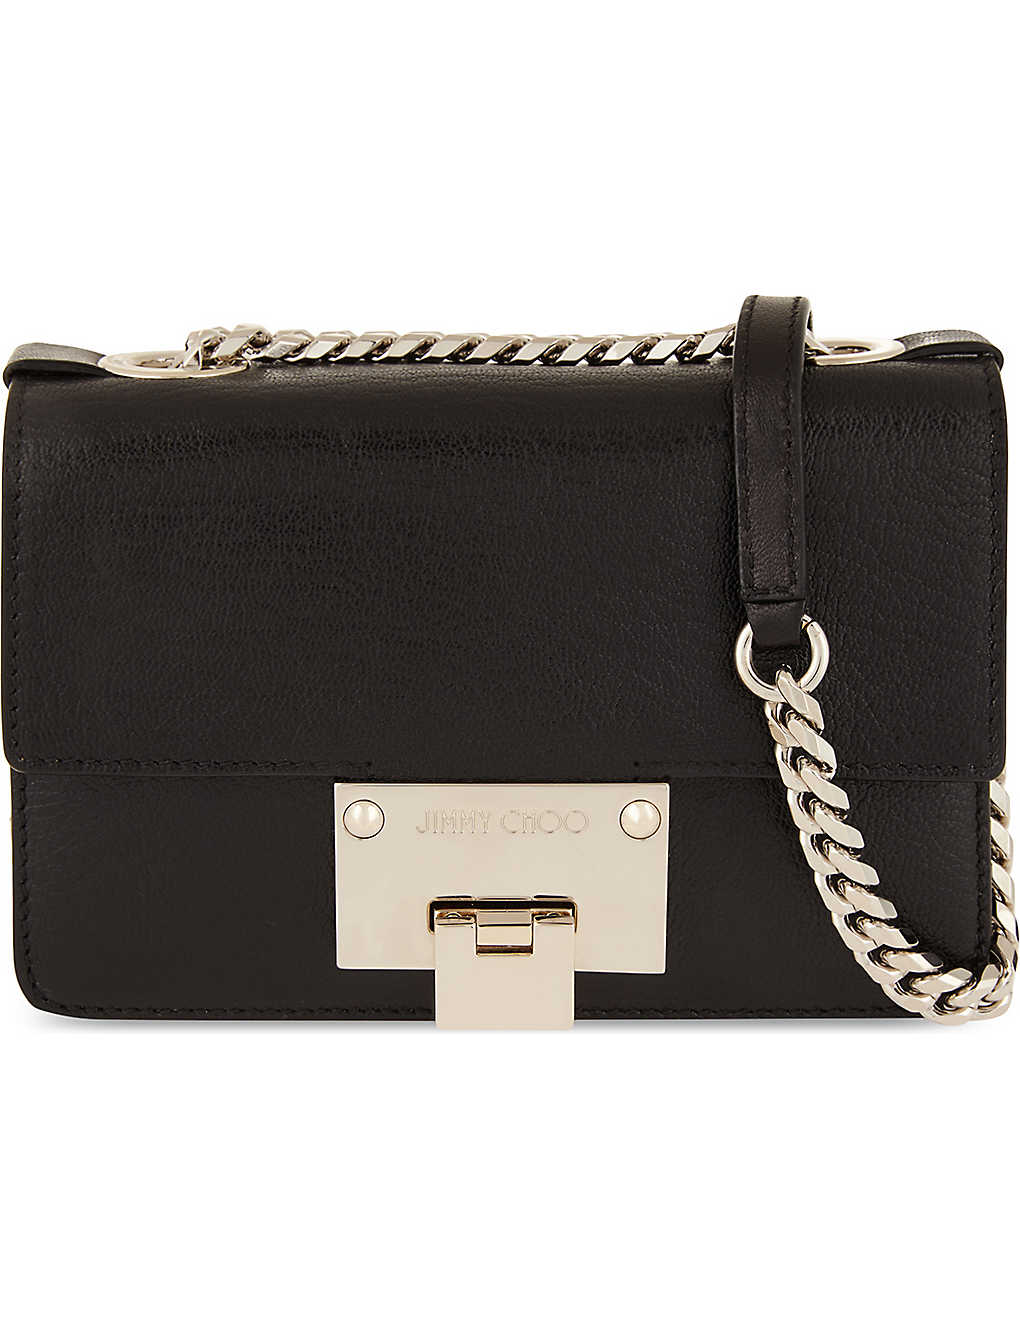 Jimmy Choo Rebel Soft Mini Calf Hair Shoulder Bag Selfridgescom